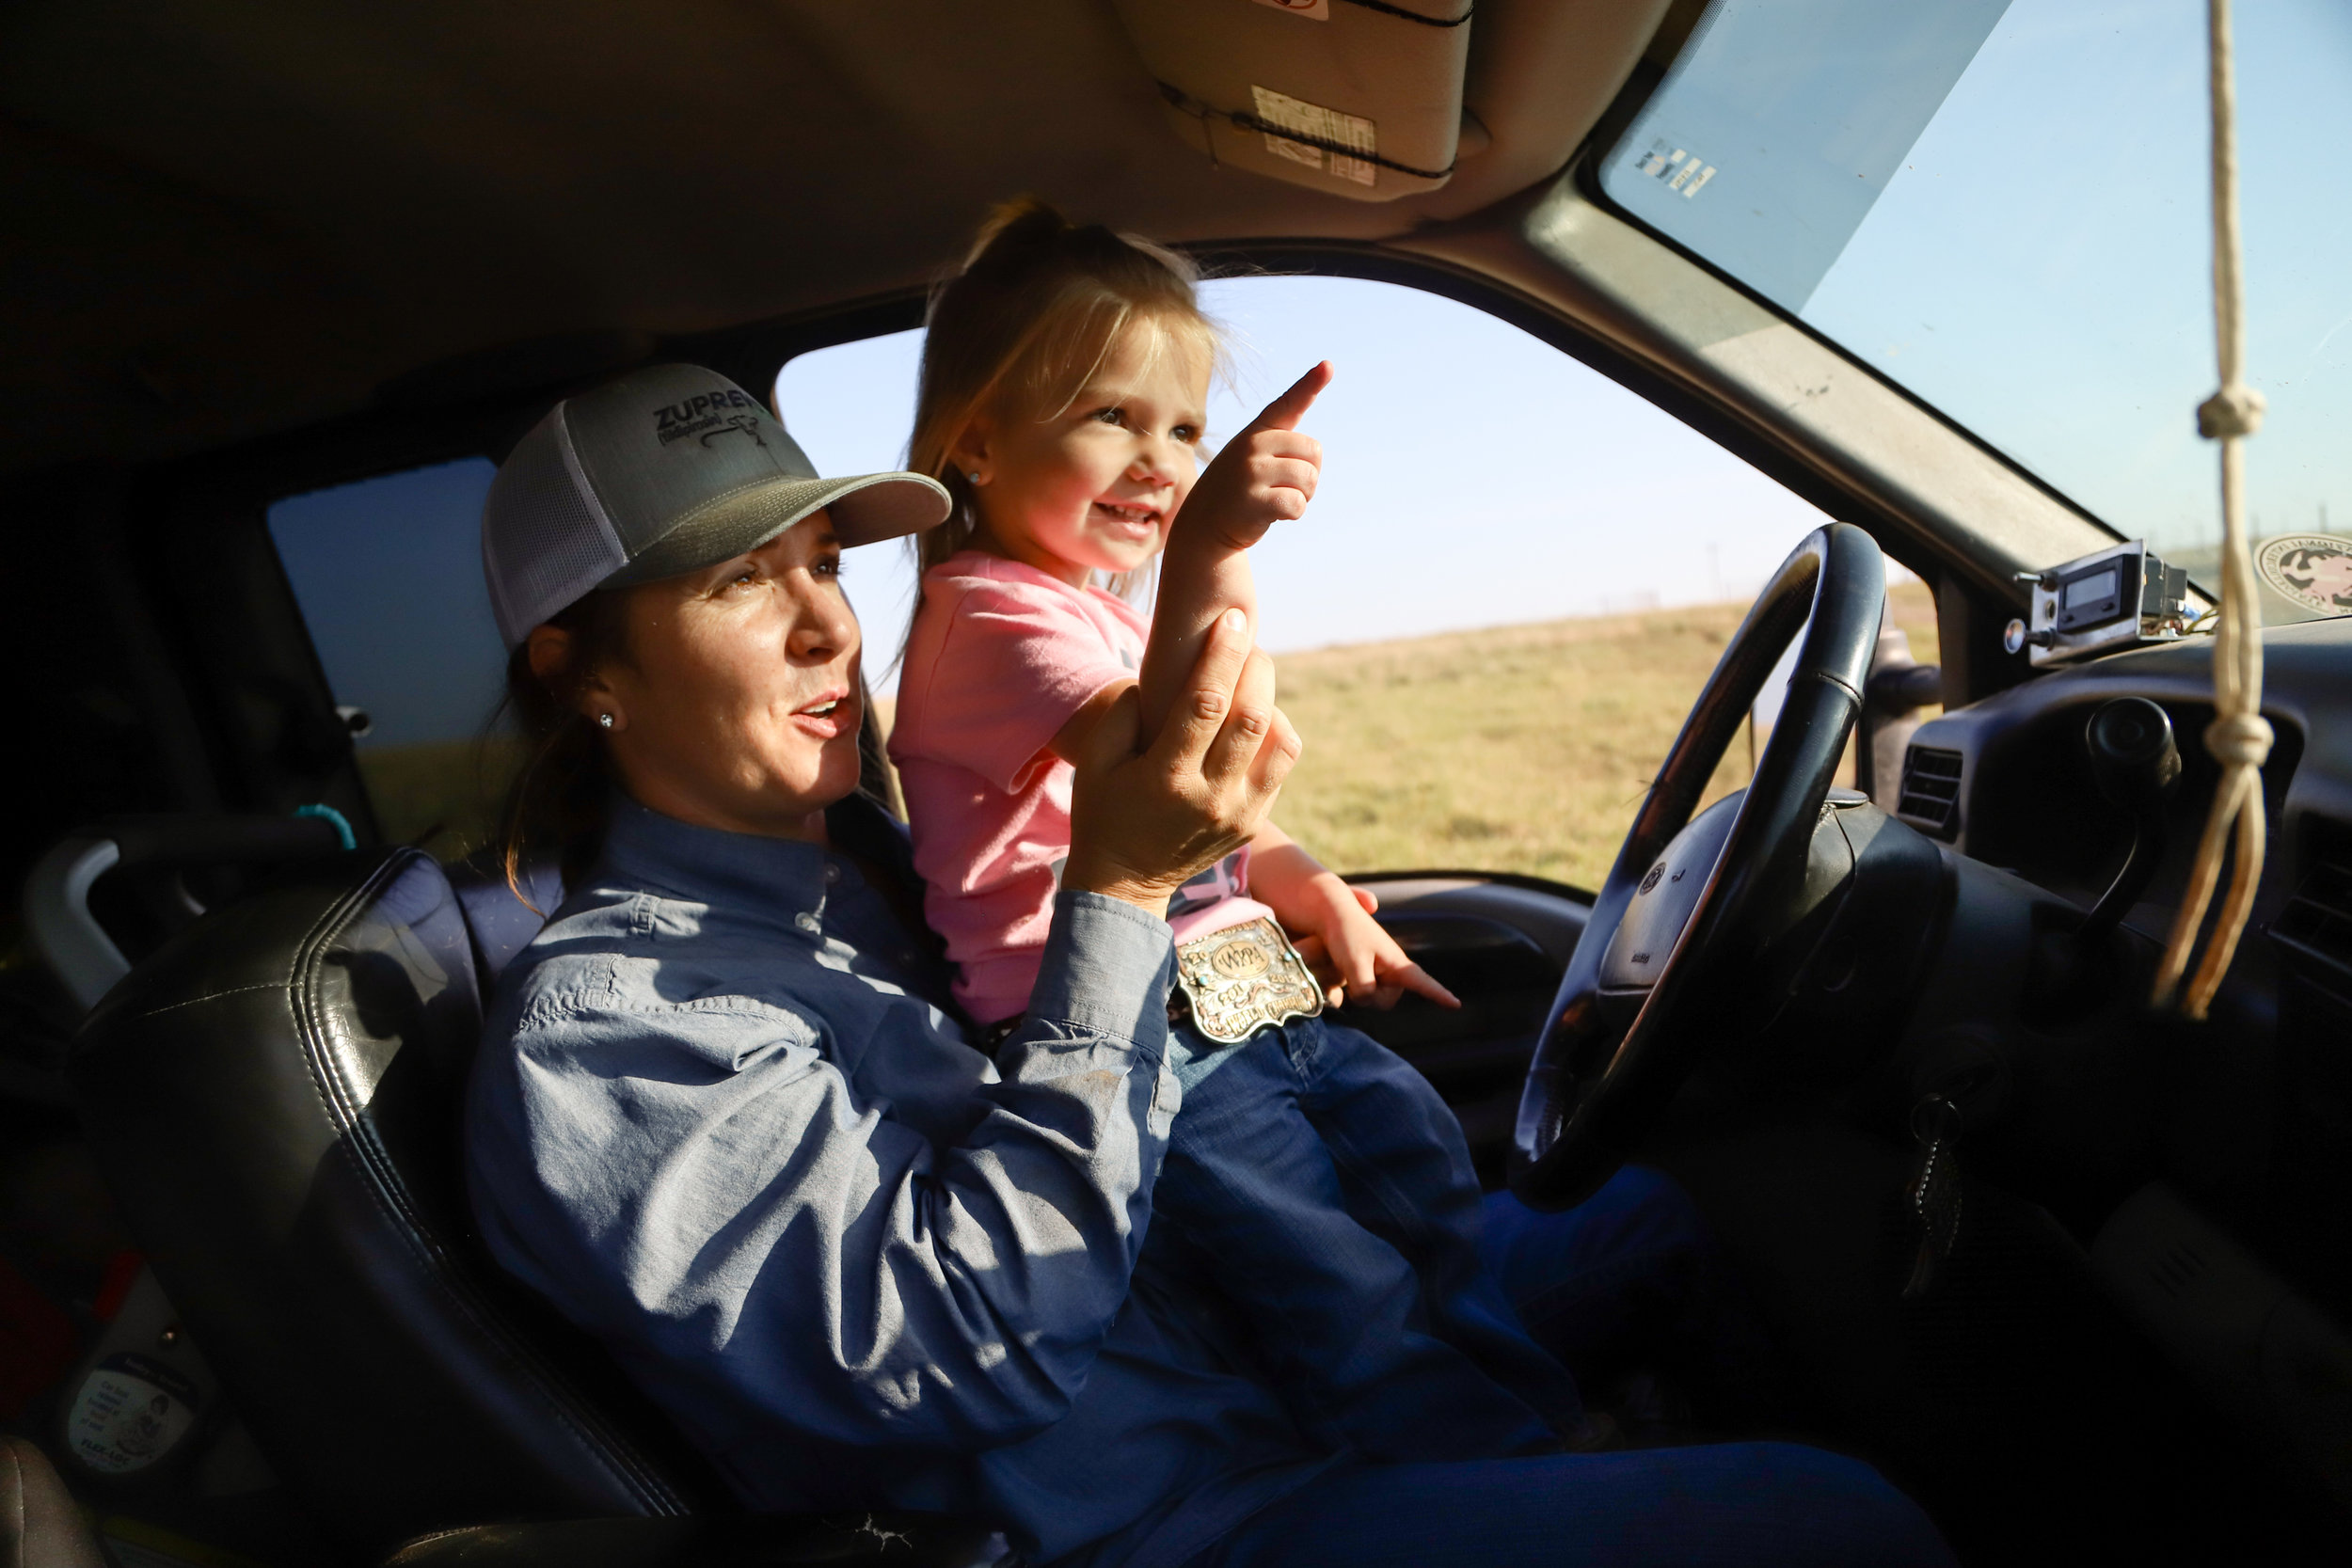 Jenna Stierwalt holds her 2-year-old daughter, Sonora, as she points out her uncle riding by on a tractor at Stierwalt Ranch in Burbank on July 27, 2019.